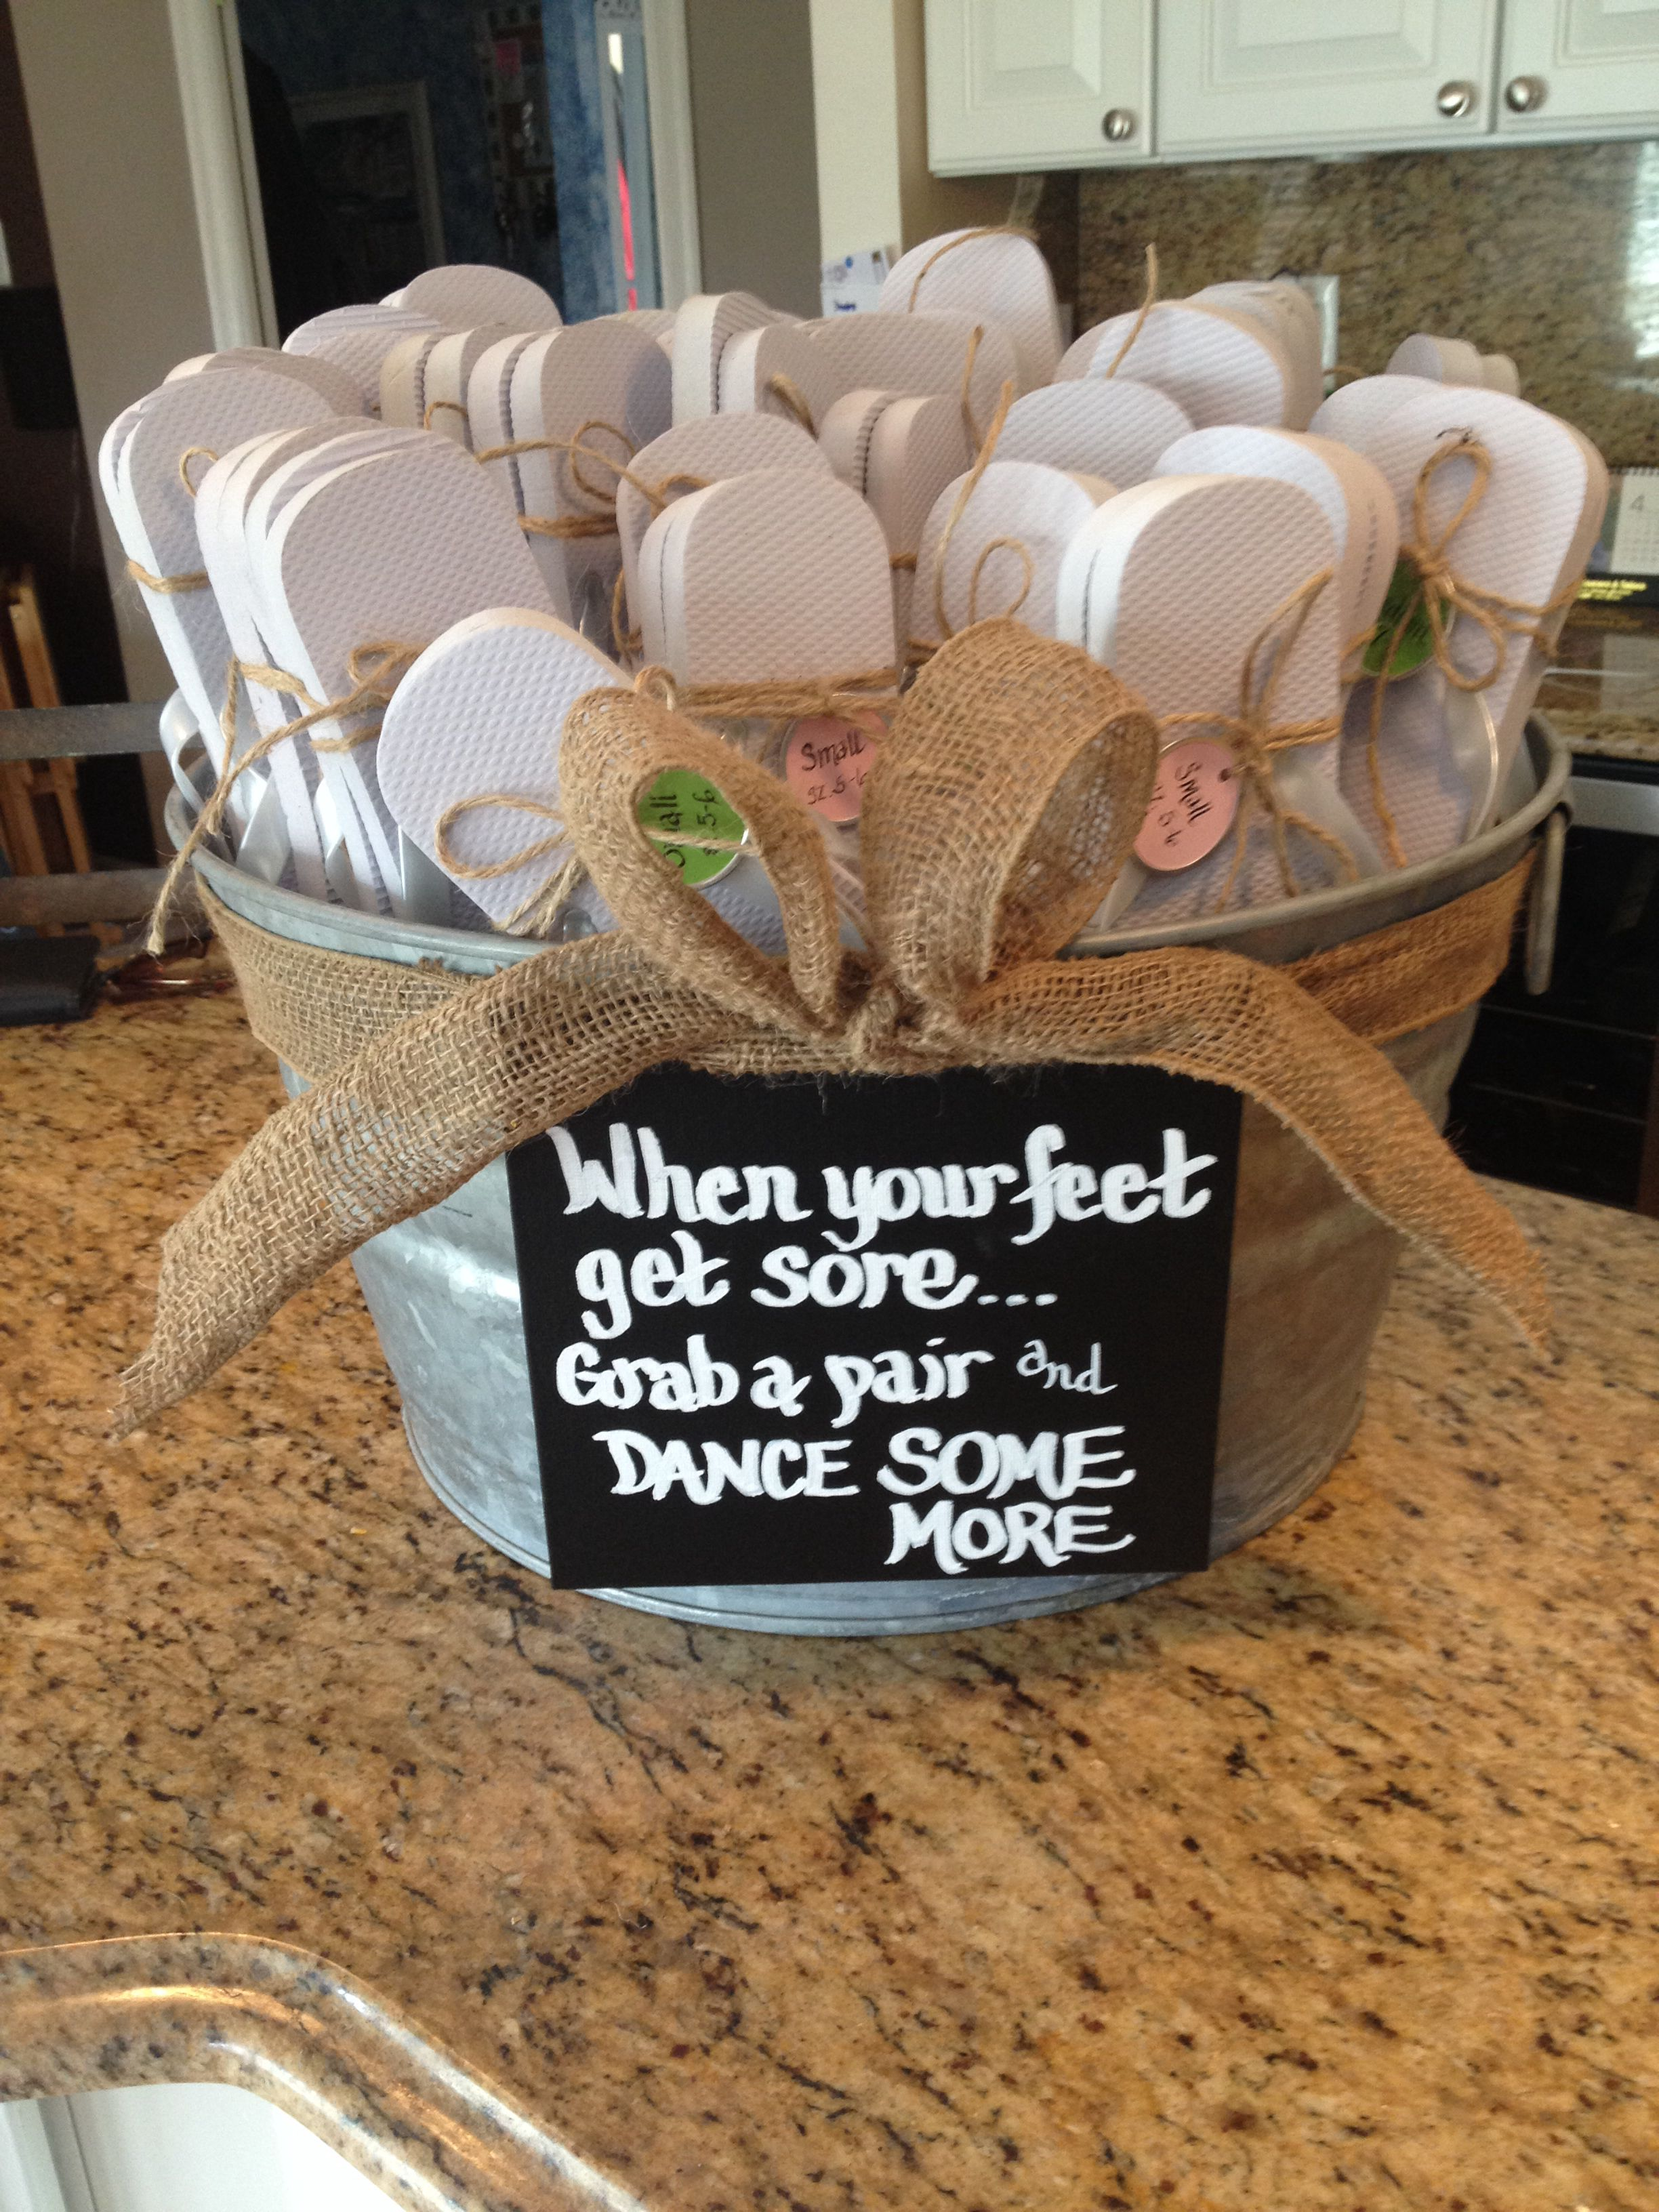 Flip Flops For Wedding Guests This Sign Looks Easy Could Work With A Basket Too Lindsey Allen